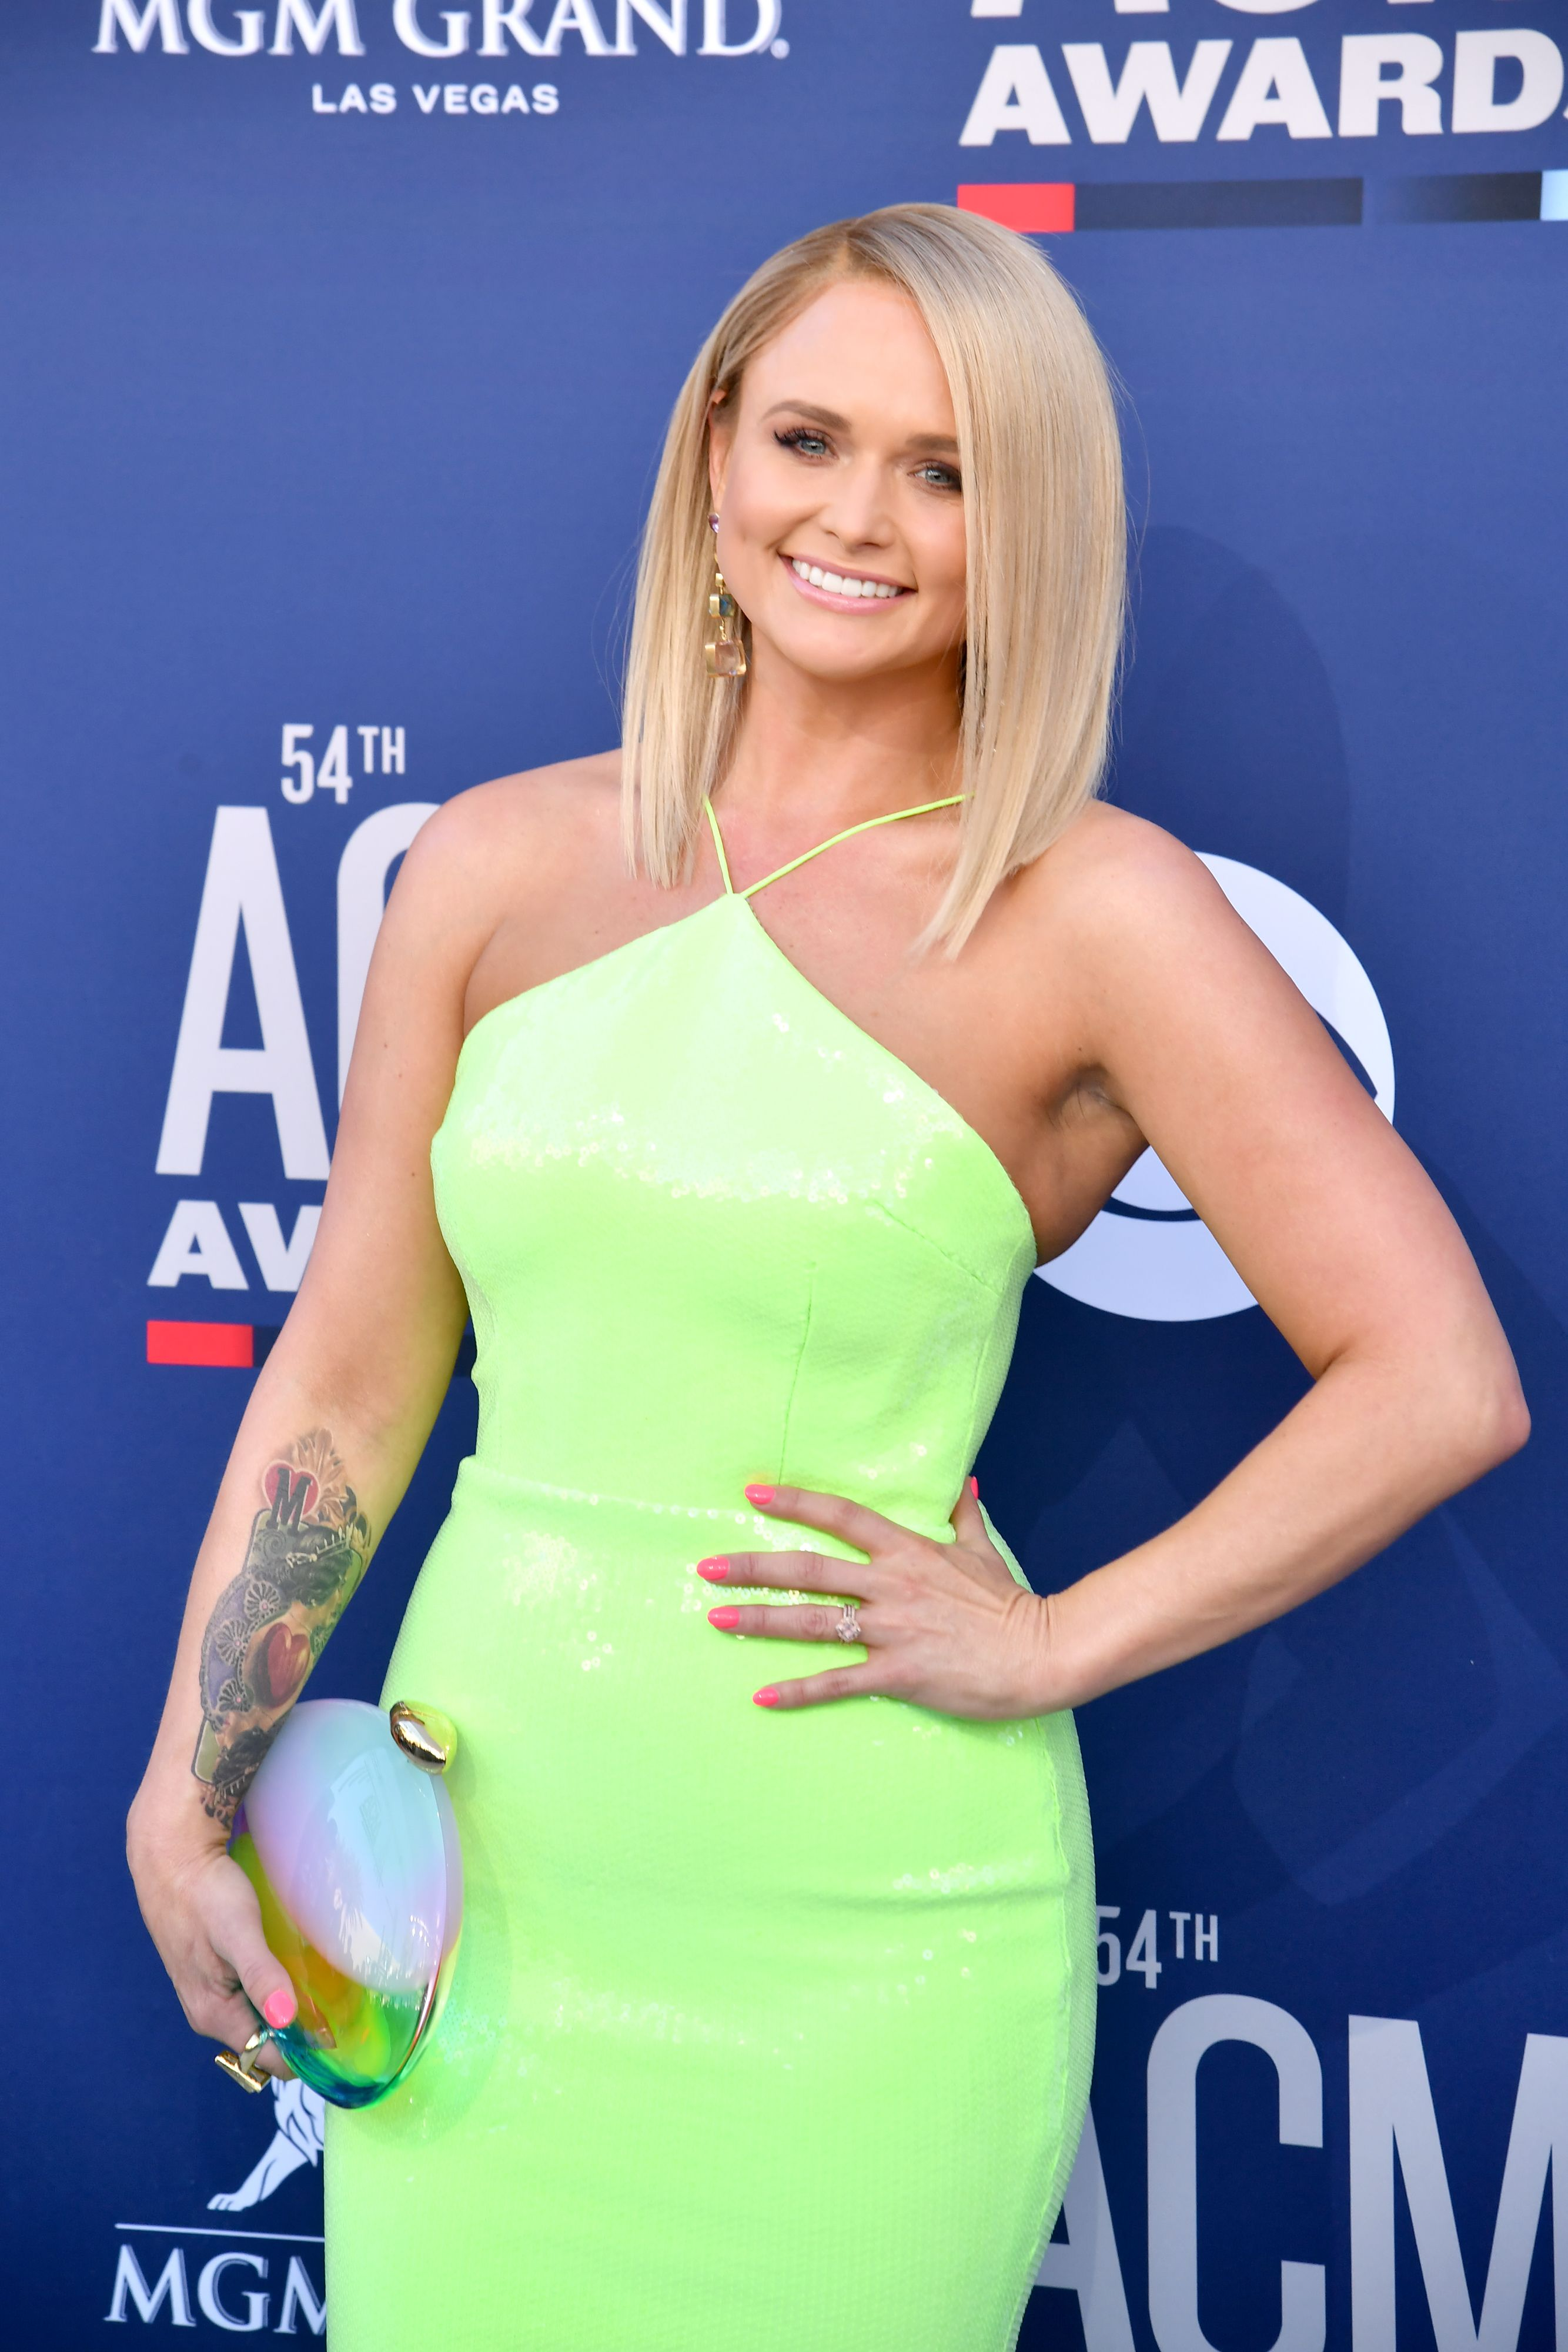 Miranda Lambert at the 54th Academy Of Country Music Awards on April 07, 2019, in Las Vegas, Nevada | Photo: Jeff Kravitz/FilmMagic/Getty Images